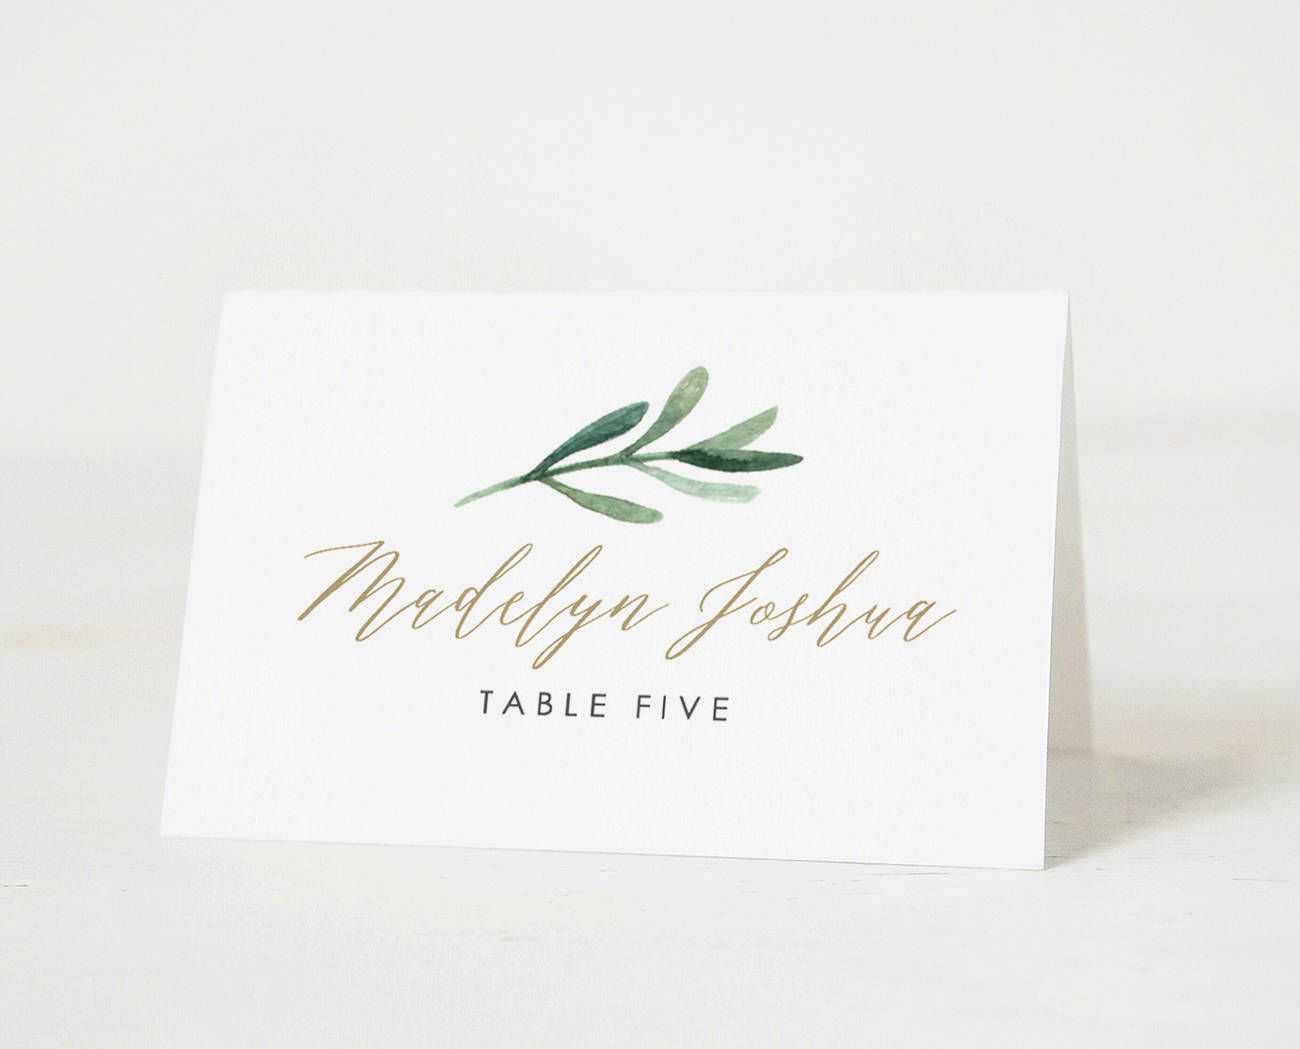 004 Template Ideas Name Place Cards Marvelous Card Free Within Place Card Setting Template